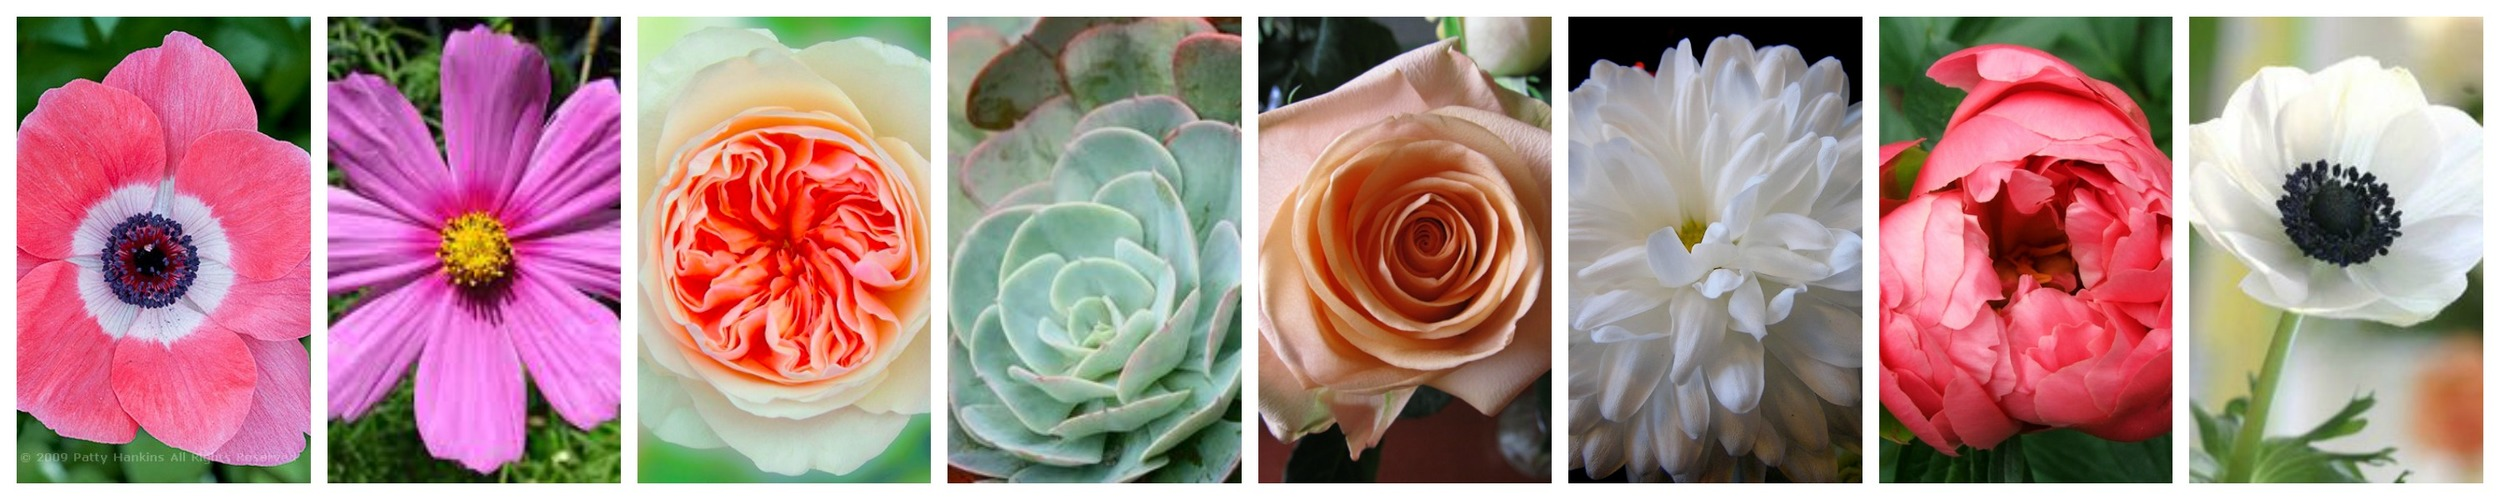 Blog Wedding Flowers Expensive Cost Pricing NZ Floral Bouquet Ideas Rustic Peonie Poppy Succulents Rose Wedding